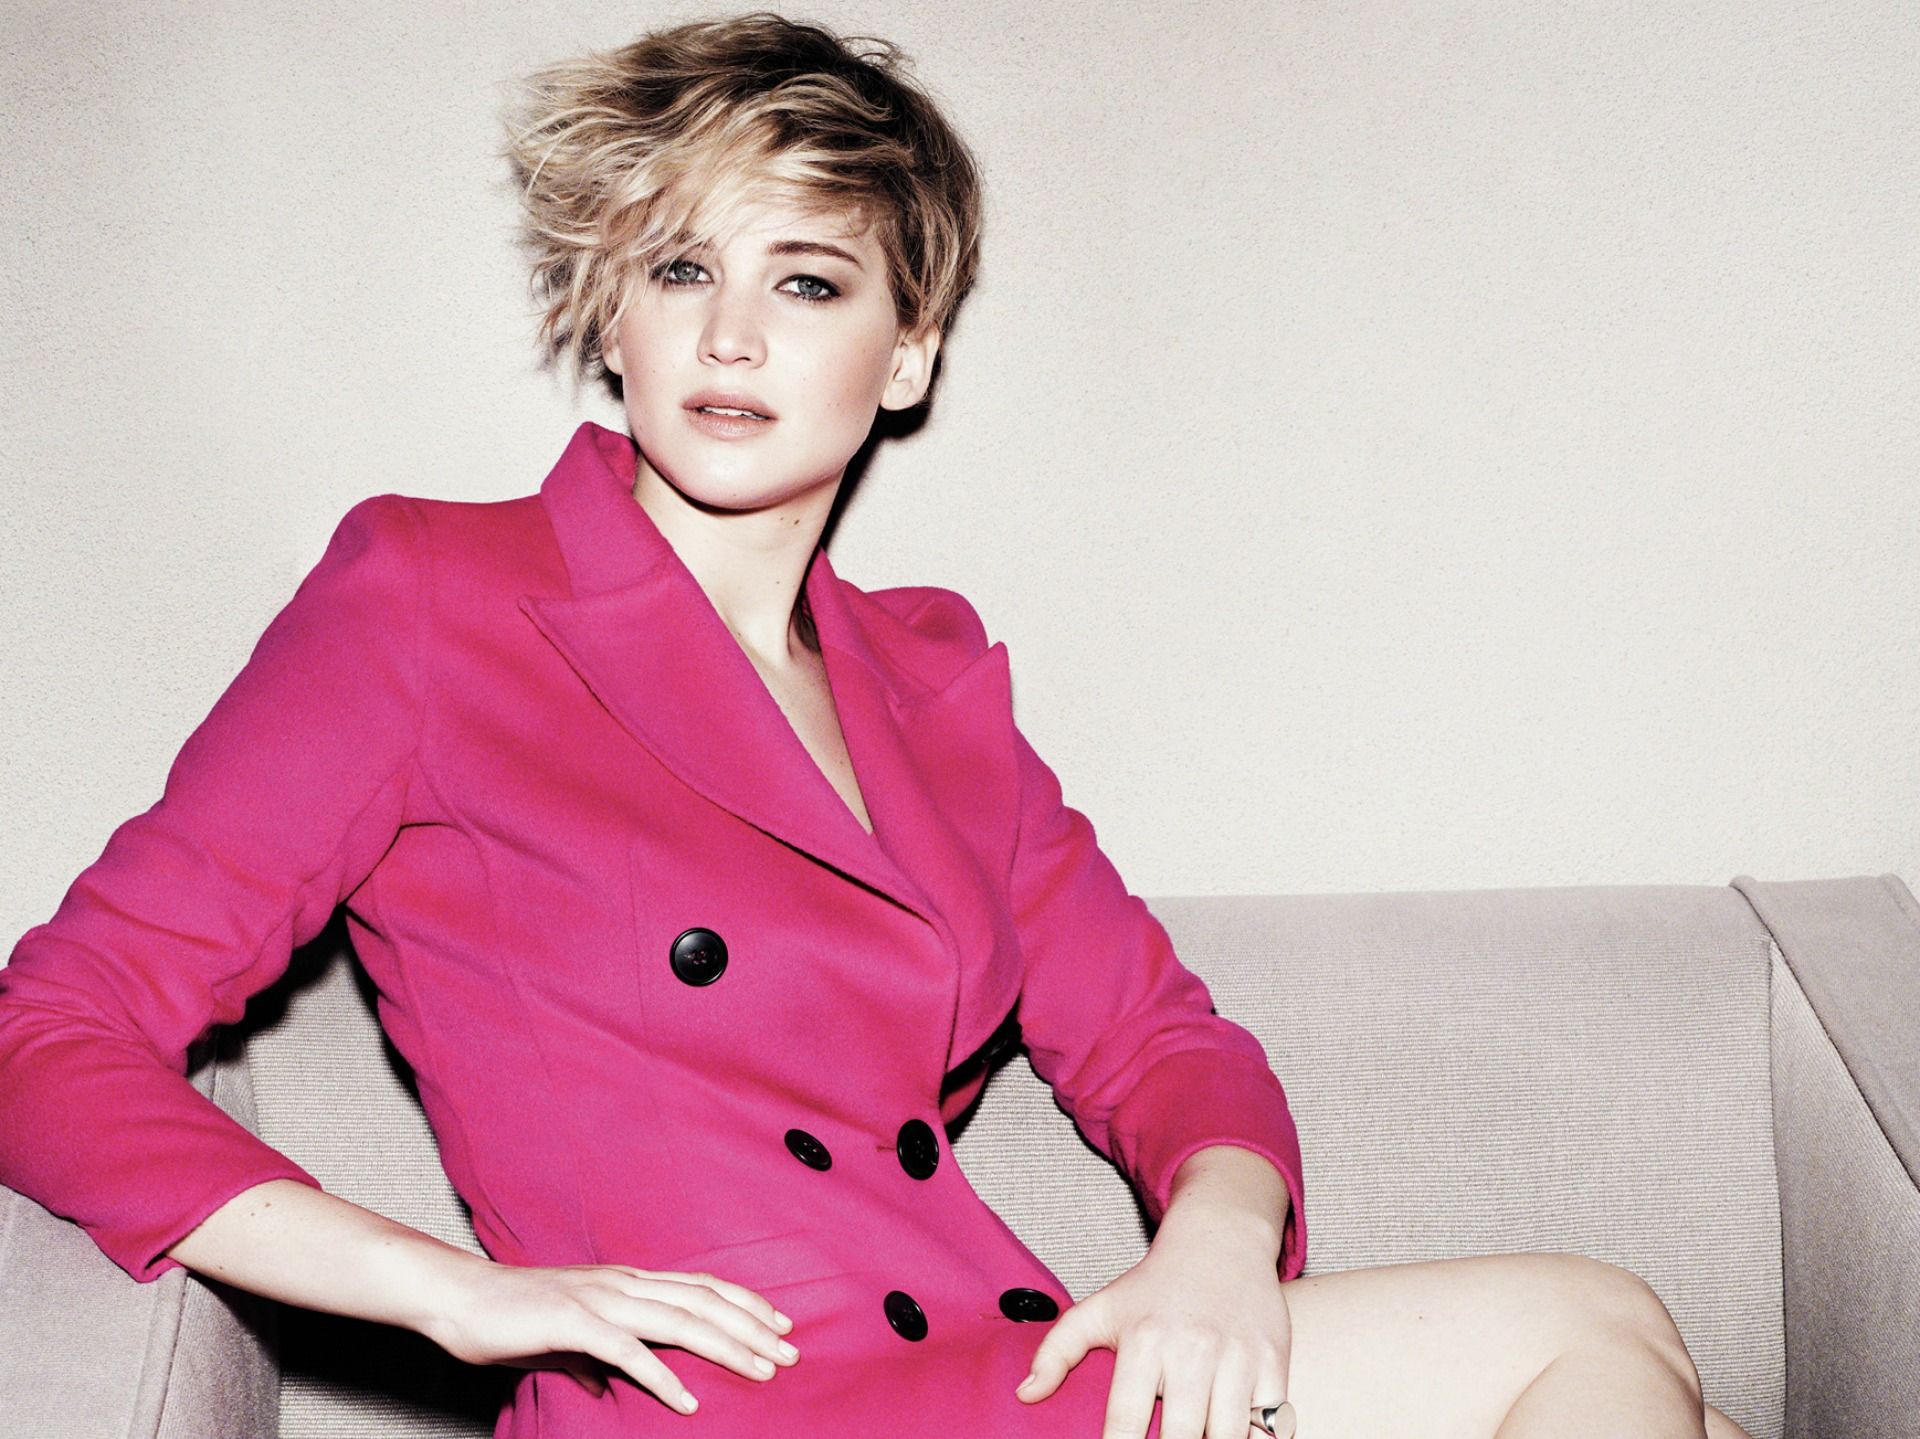 Jennifer Lawrence in Marie Claire